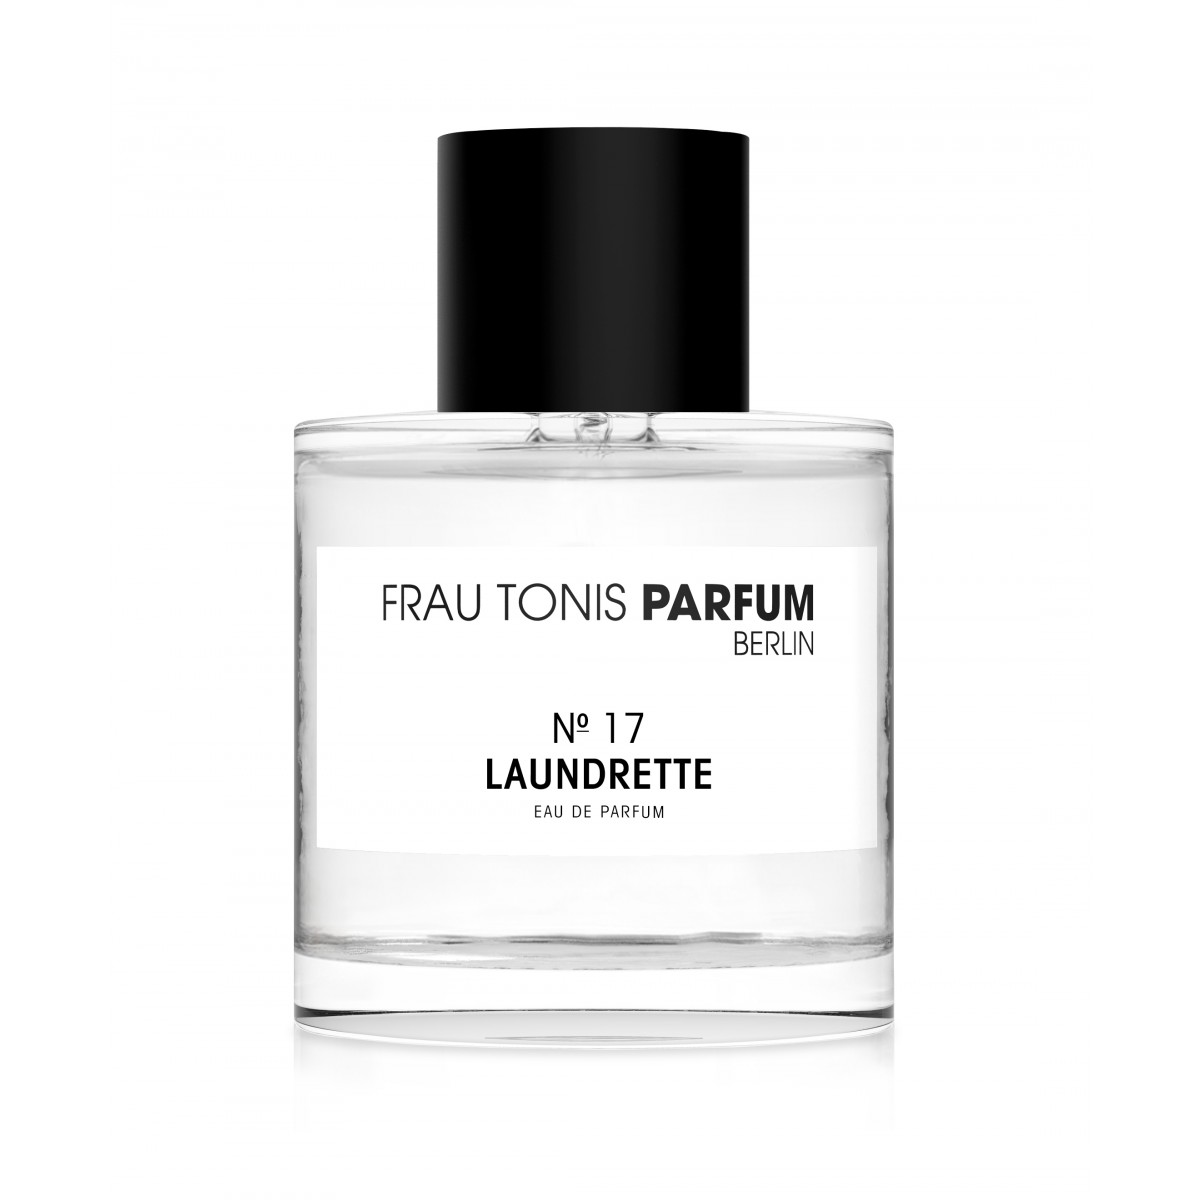 No. 17 Laundrette | Eau de Parfum (50ml) by Frau Tonis Parfum